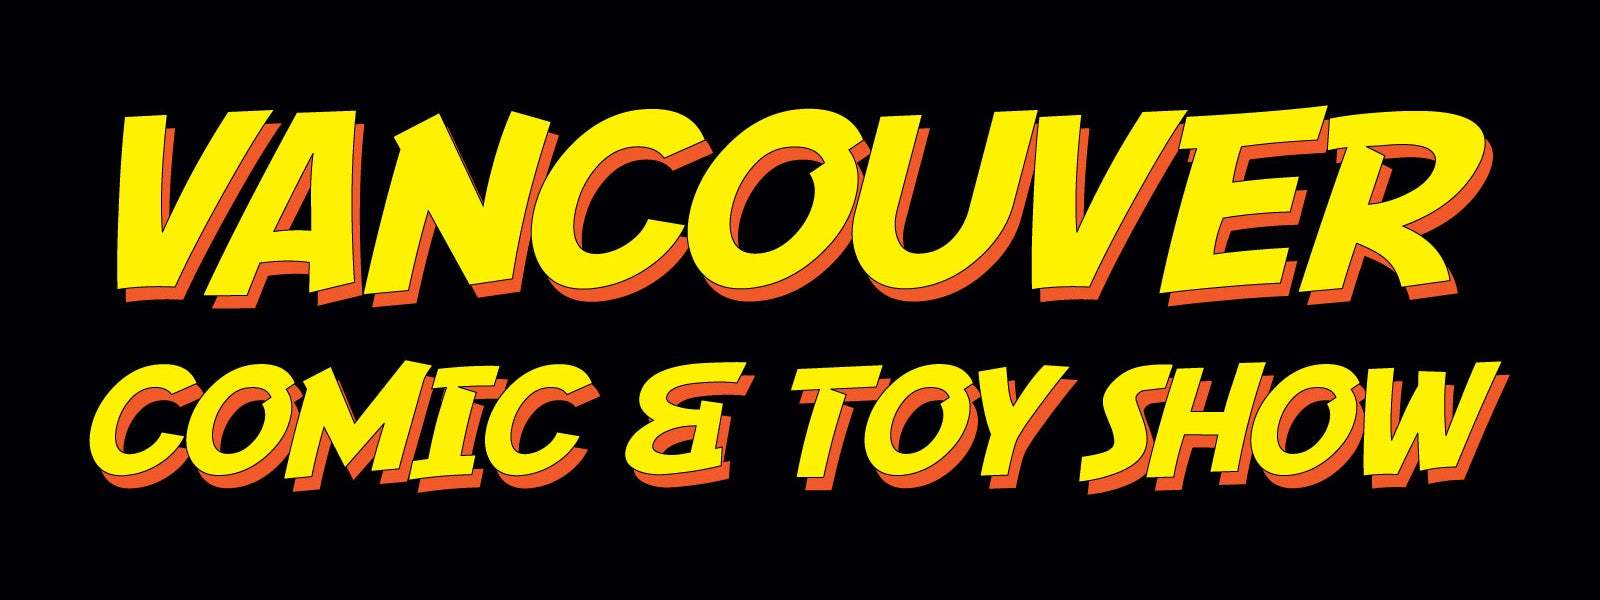 Vancouver Comic & Toy Show